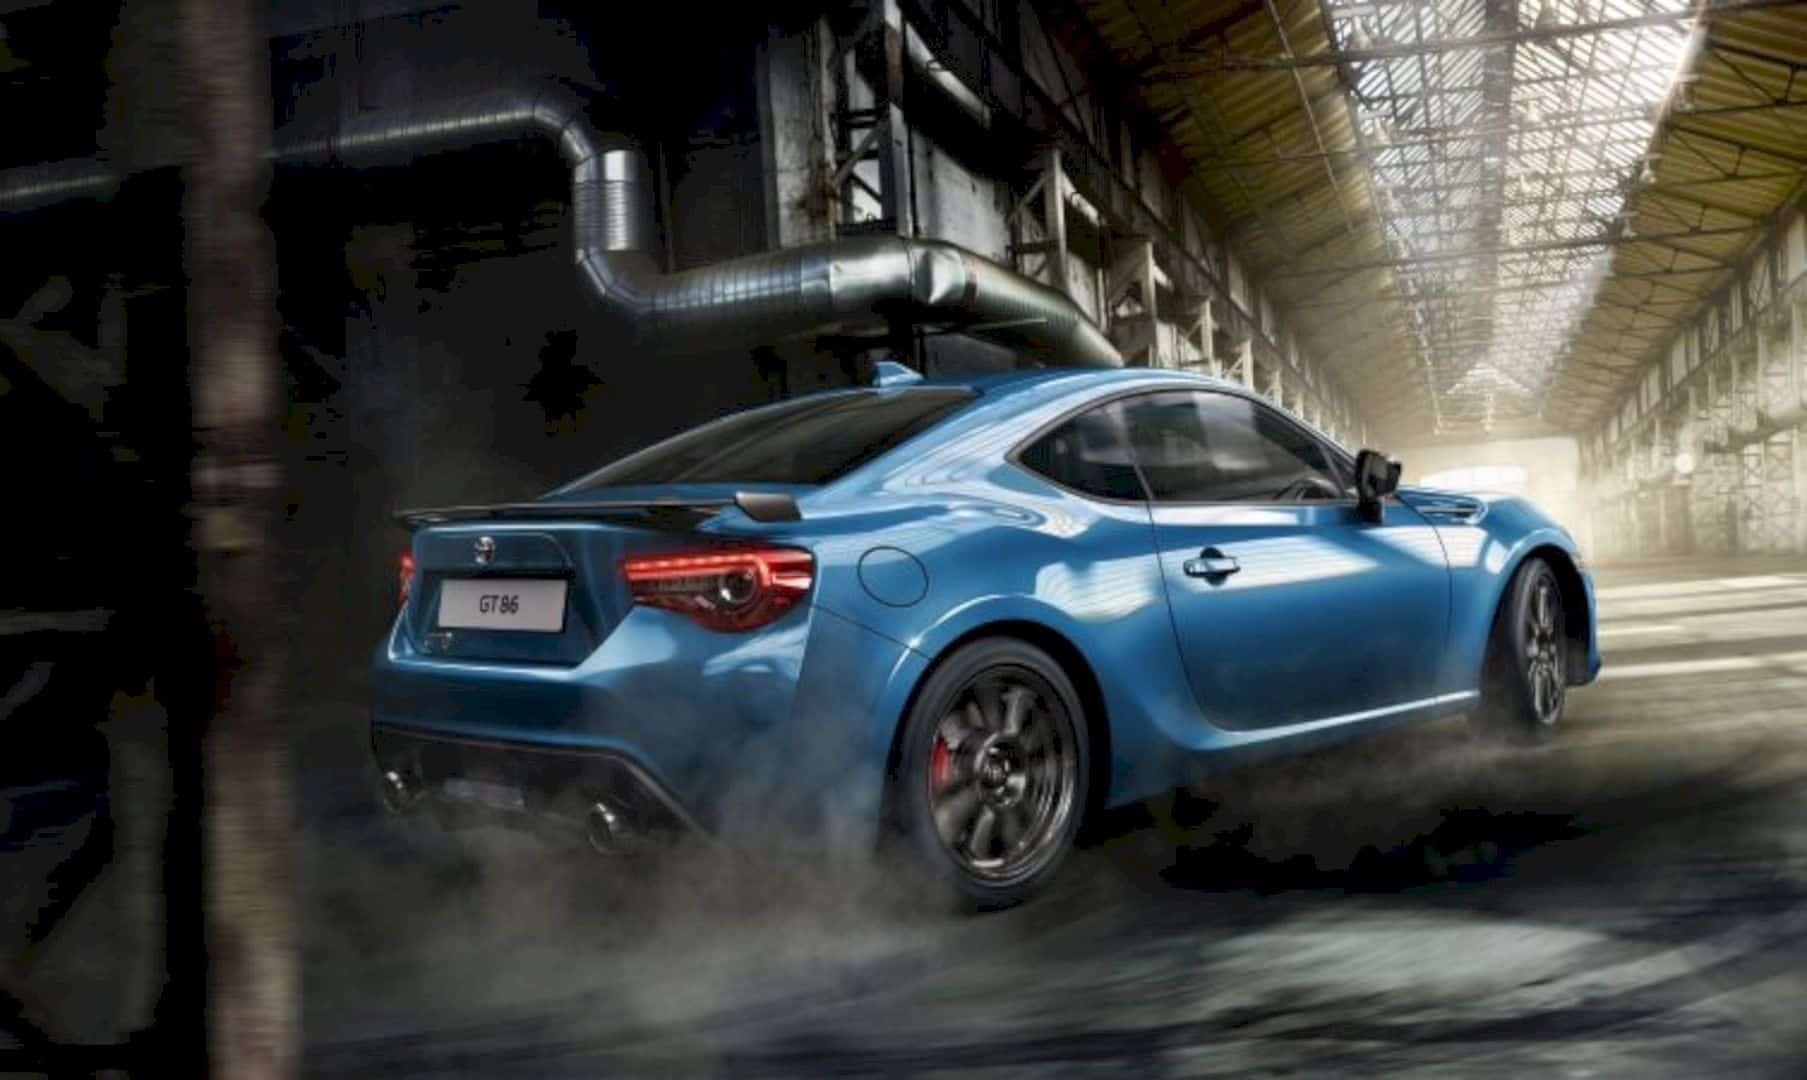 Toyota Gt86 Club Series Blue Edition 1